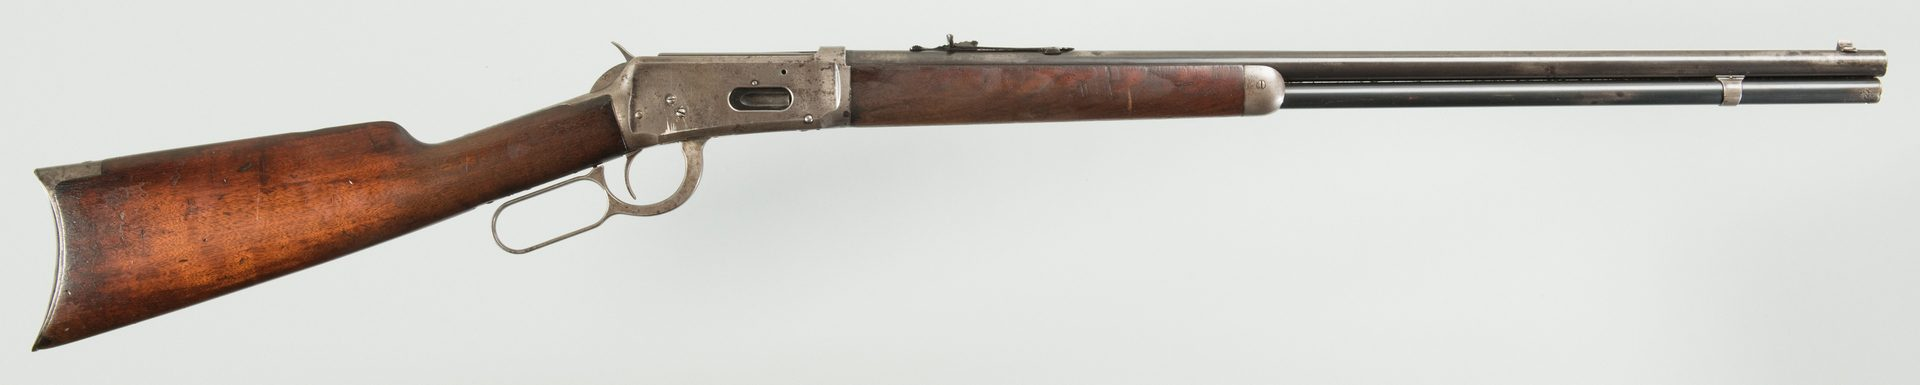 Lot 809: Winchester Model 1894 38-55 Win Lever Action Rifle